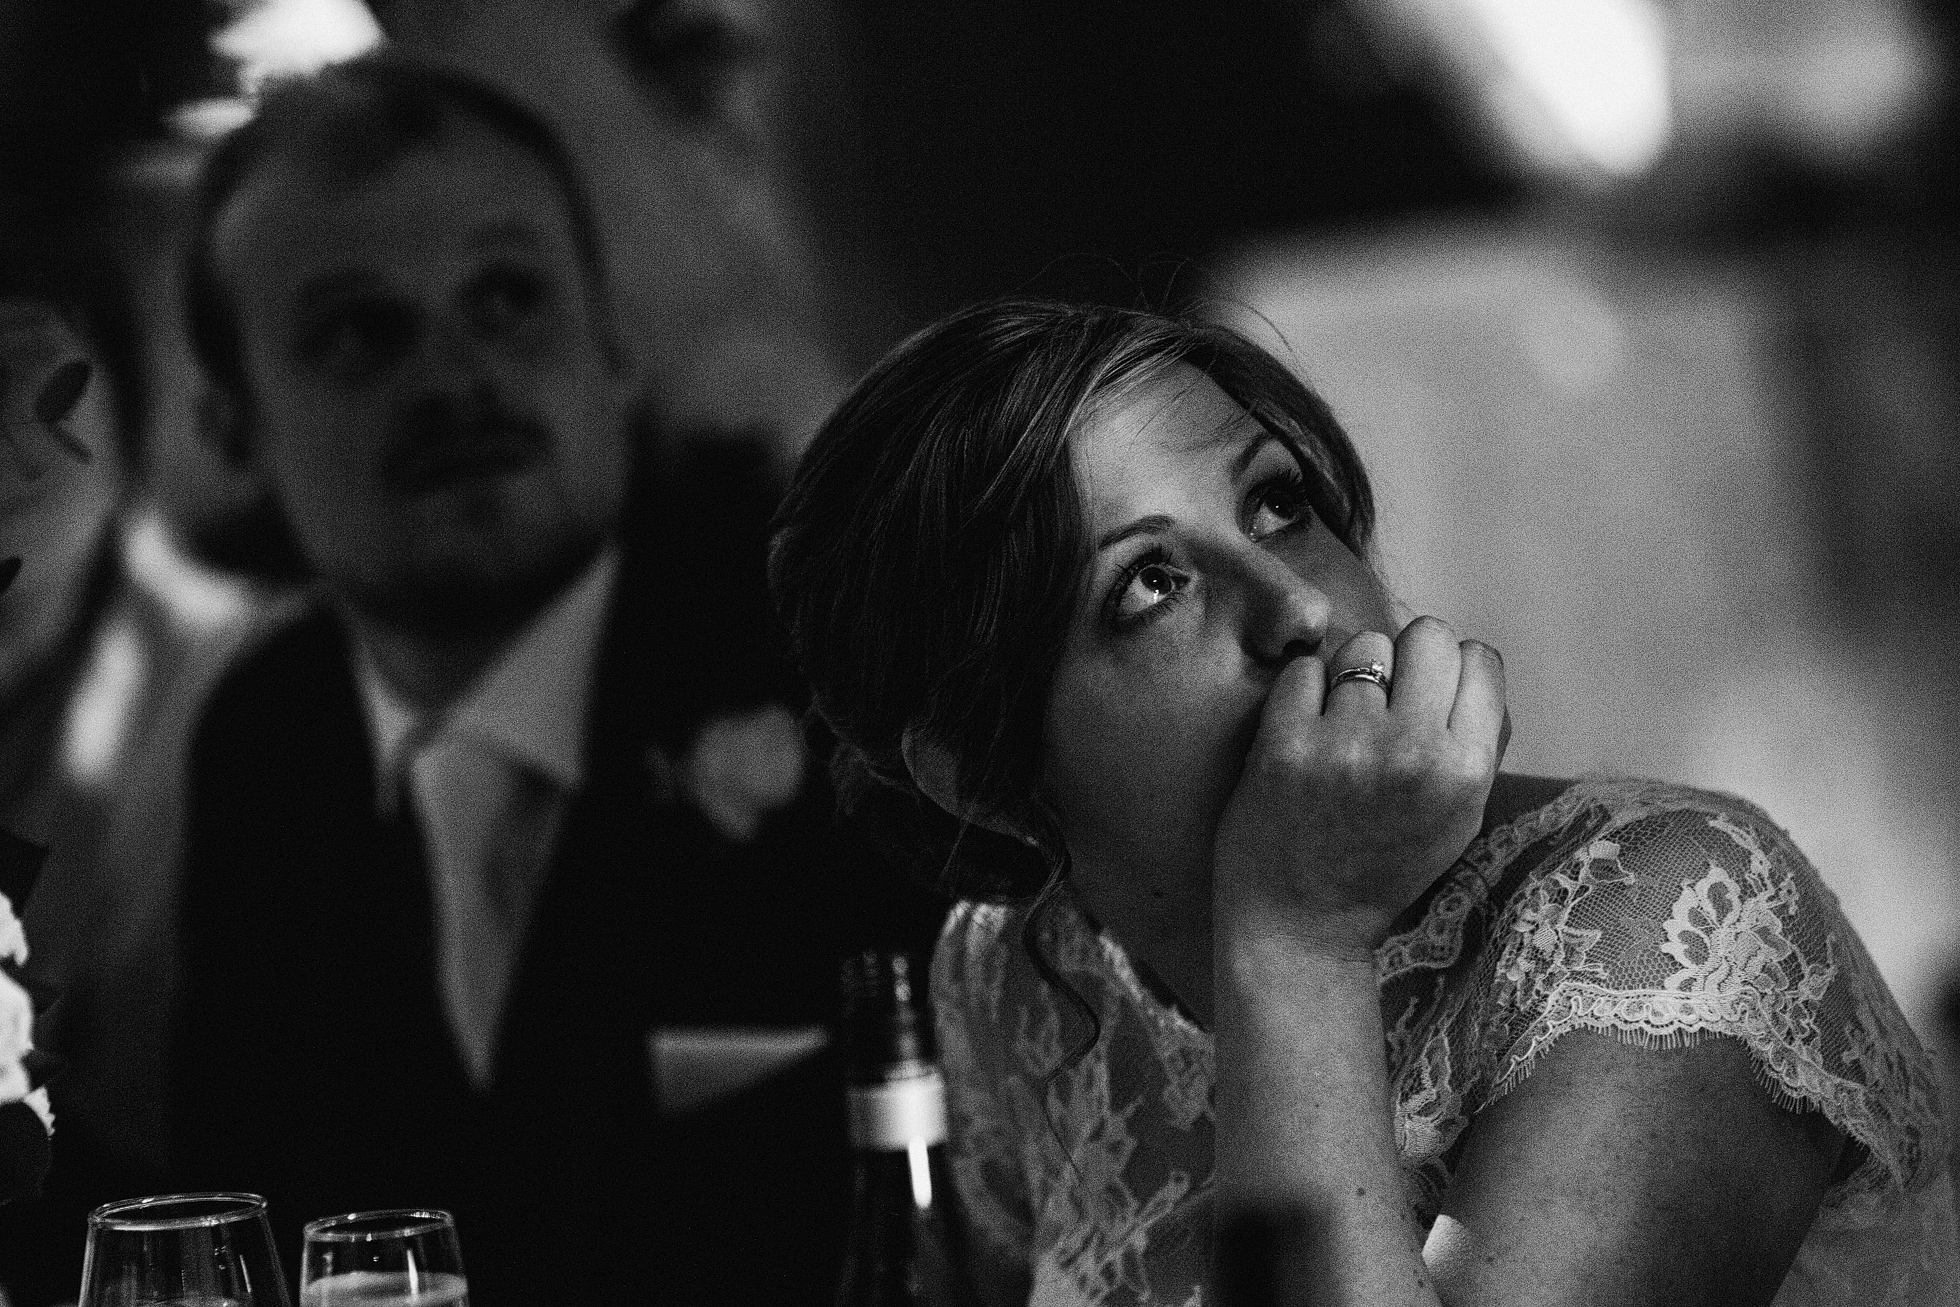 Wedding Photography with the Fuji X-T1